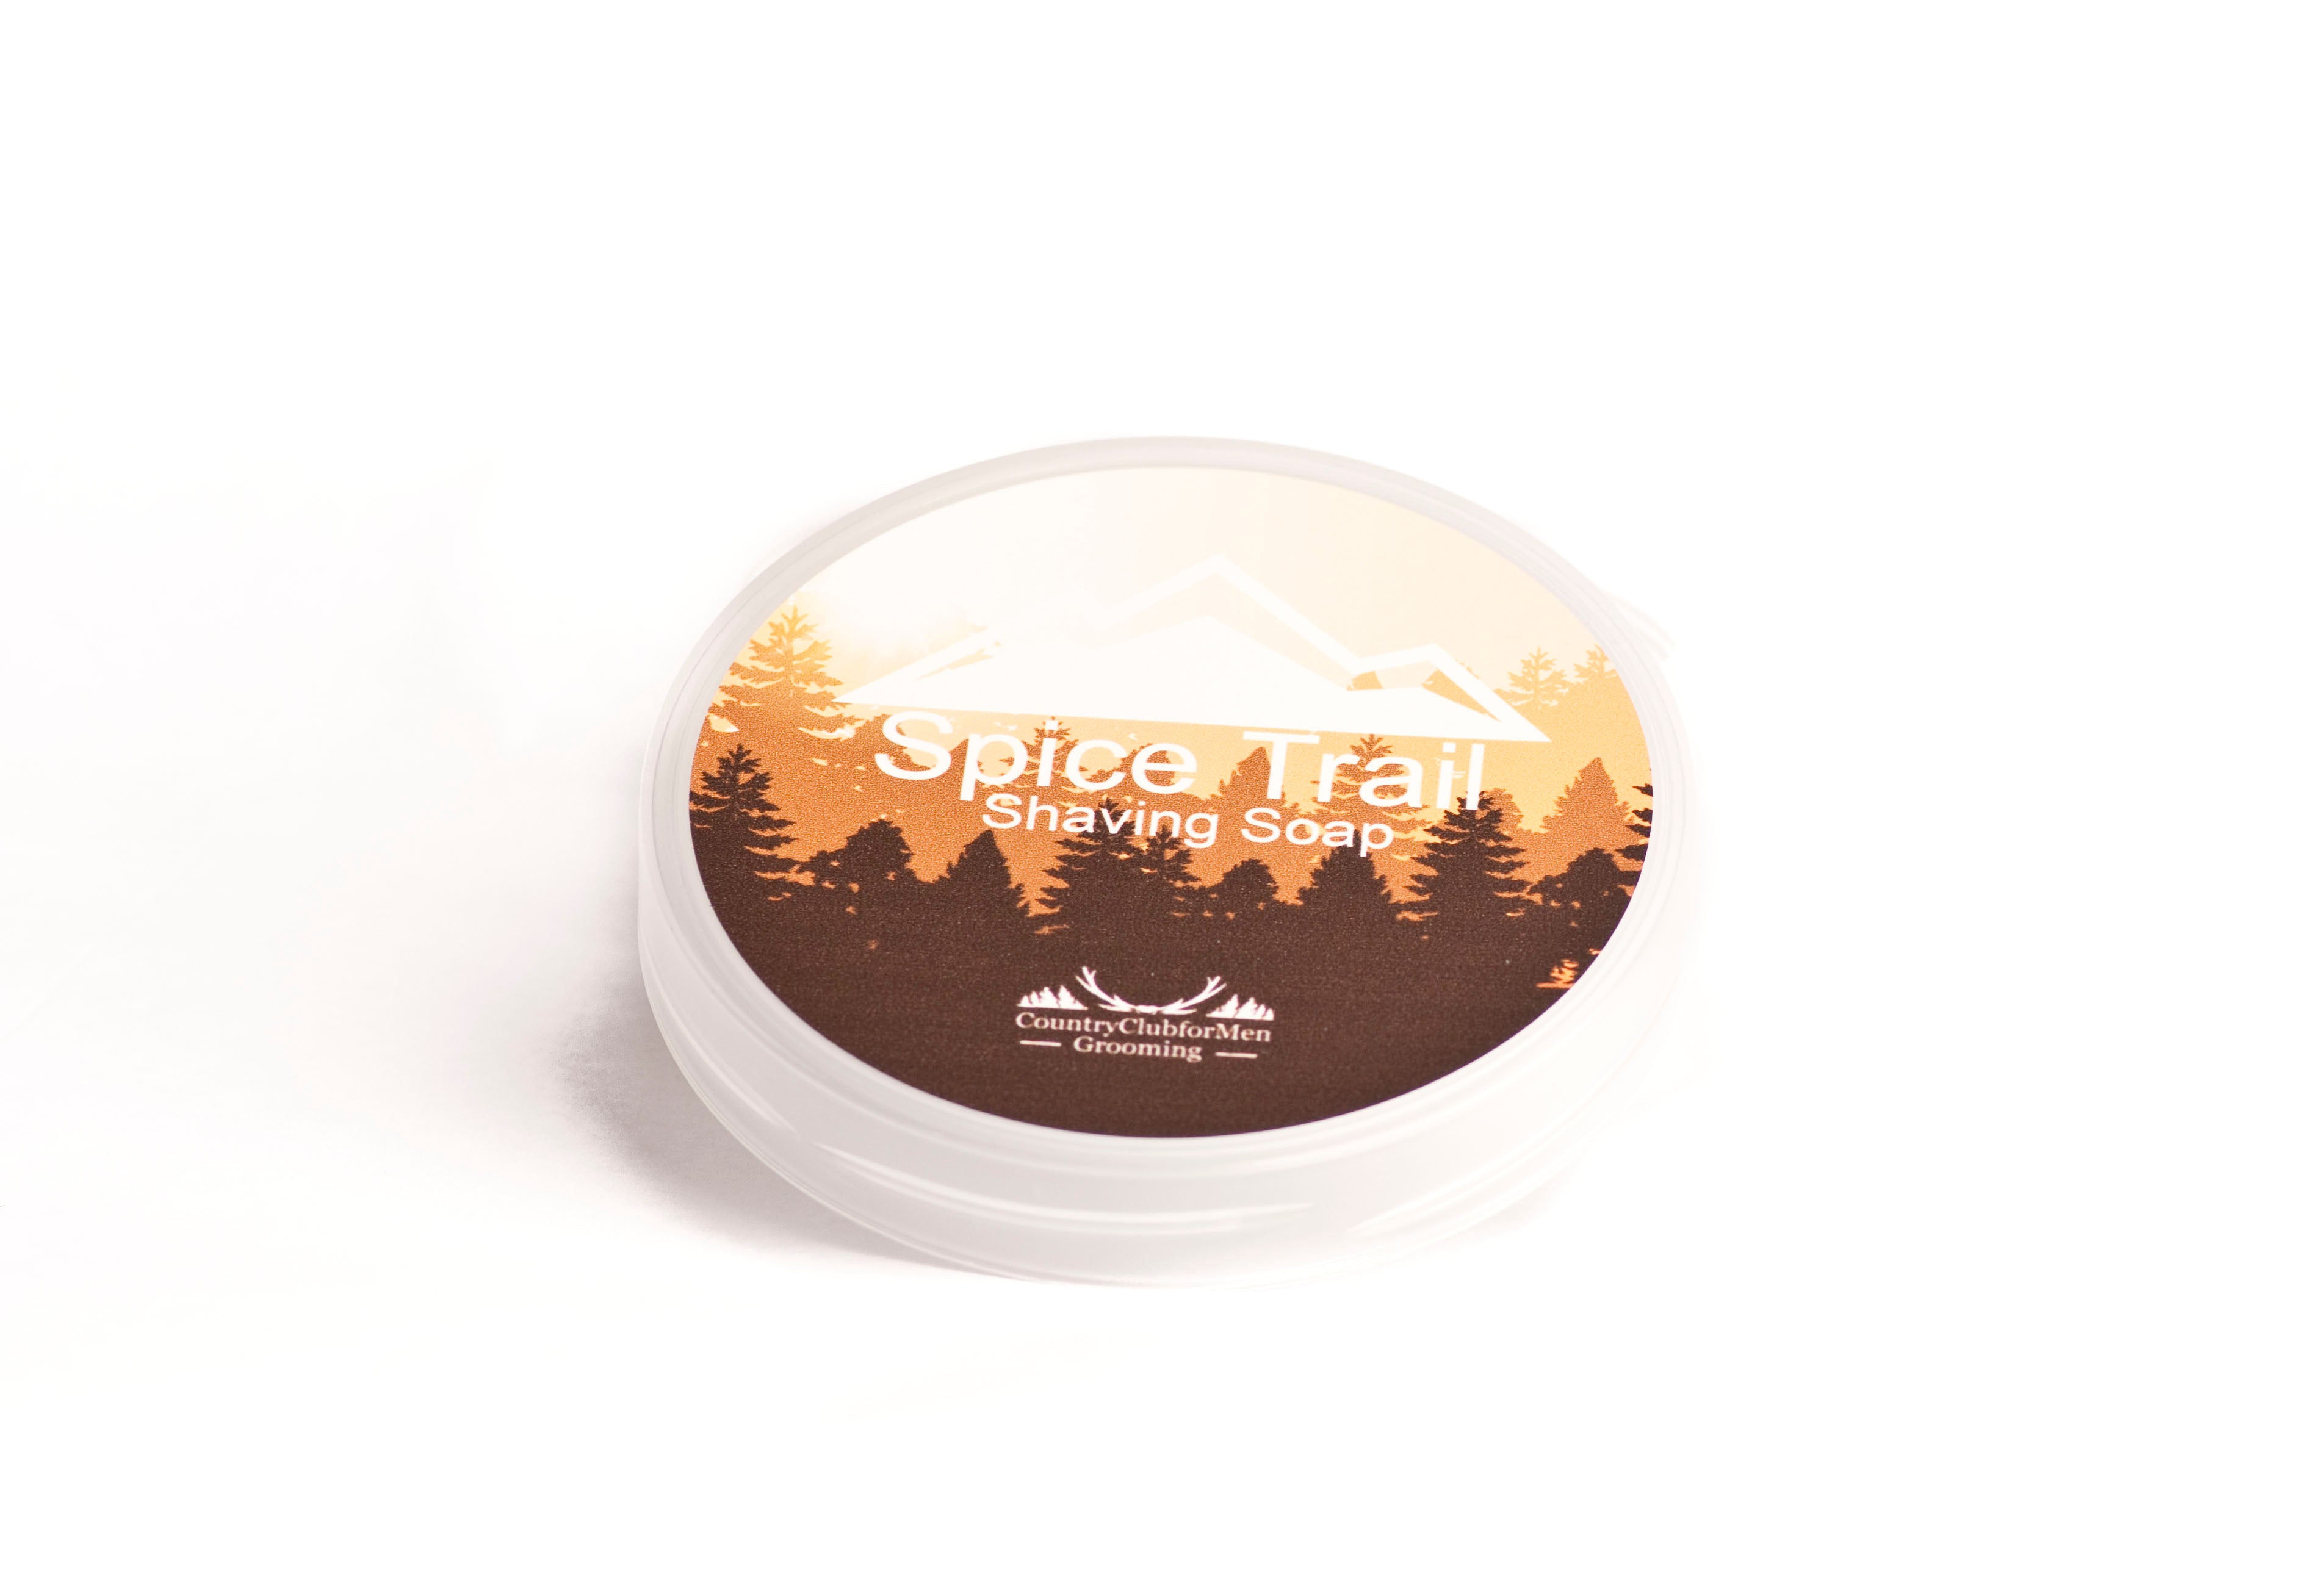 Spice Trail Shaving Soap